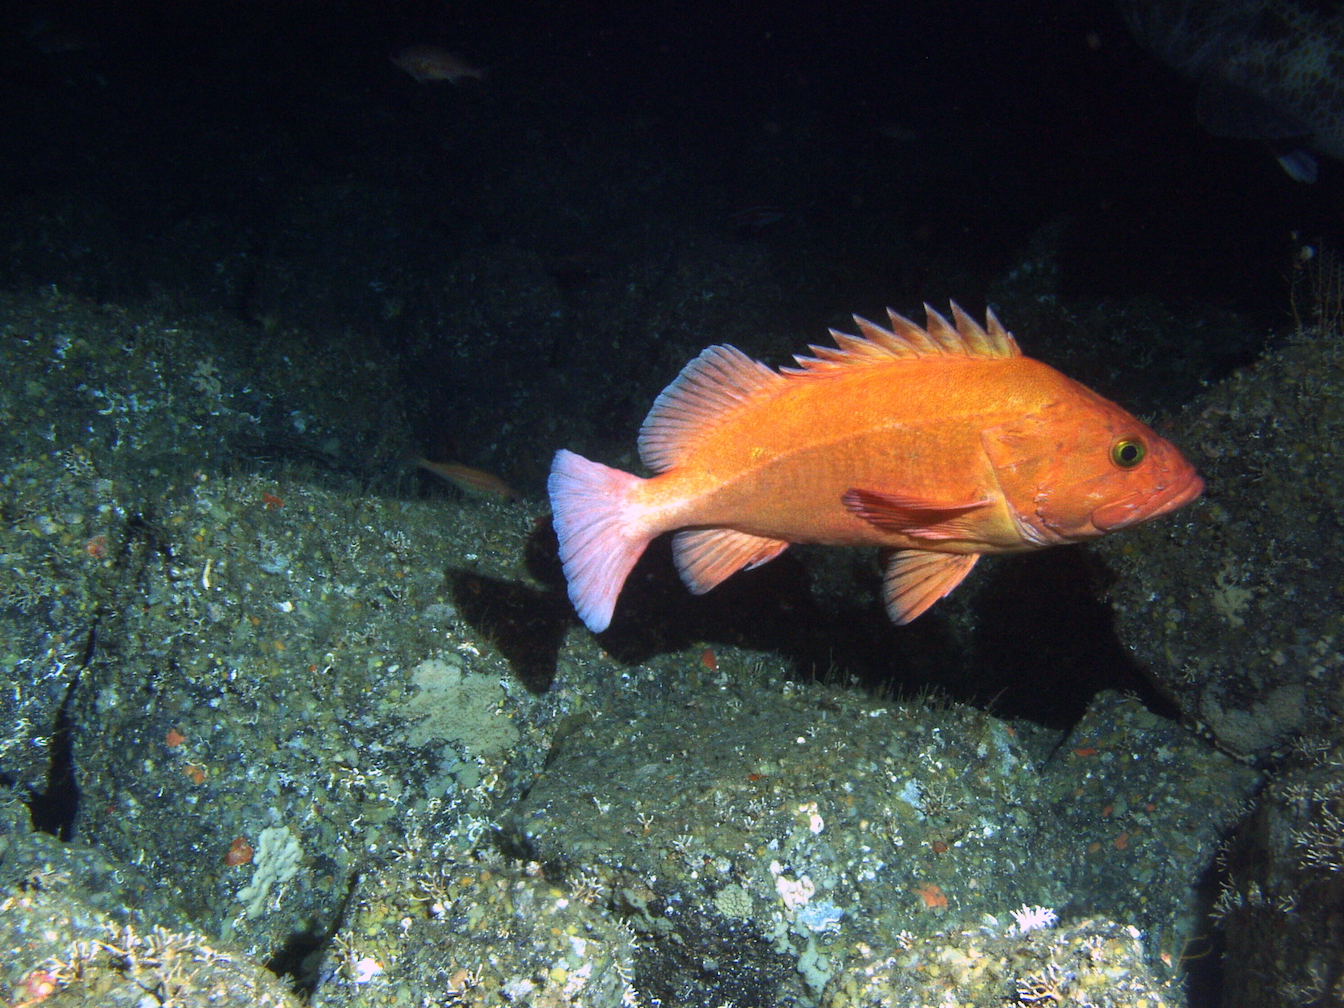 A new study from the University of Washington has found that older fish are rapidly depleting due to overfishing.